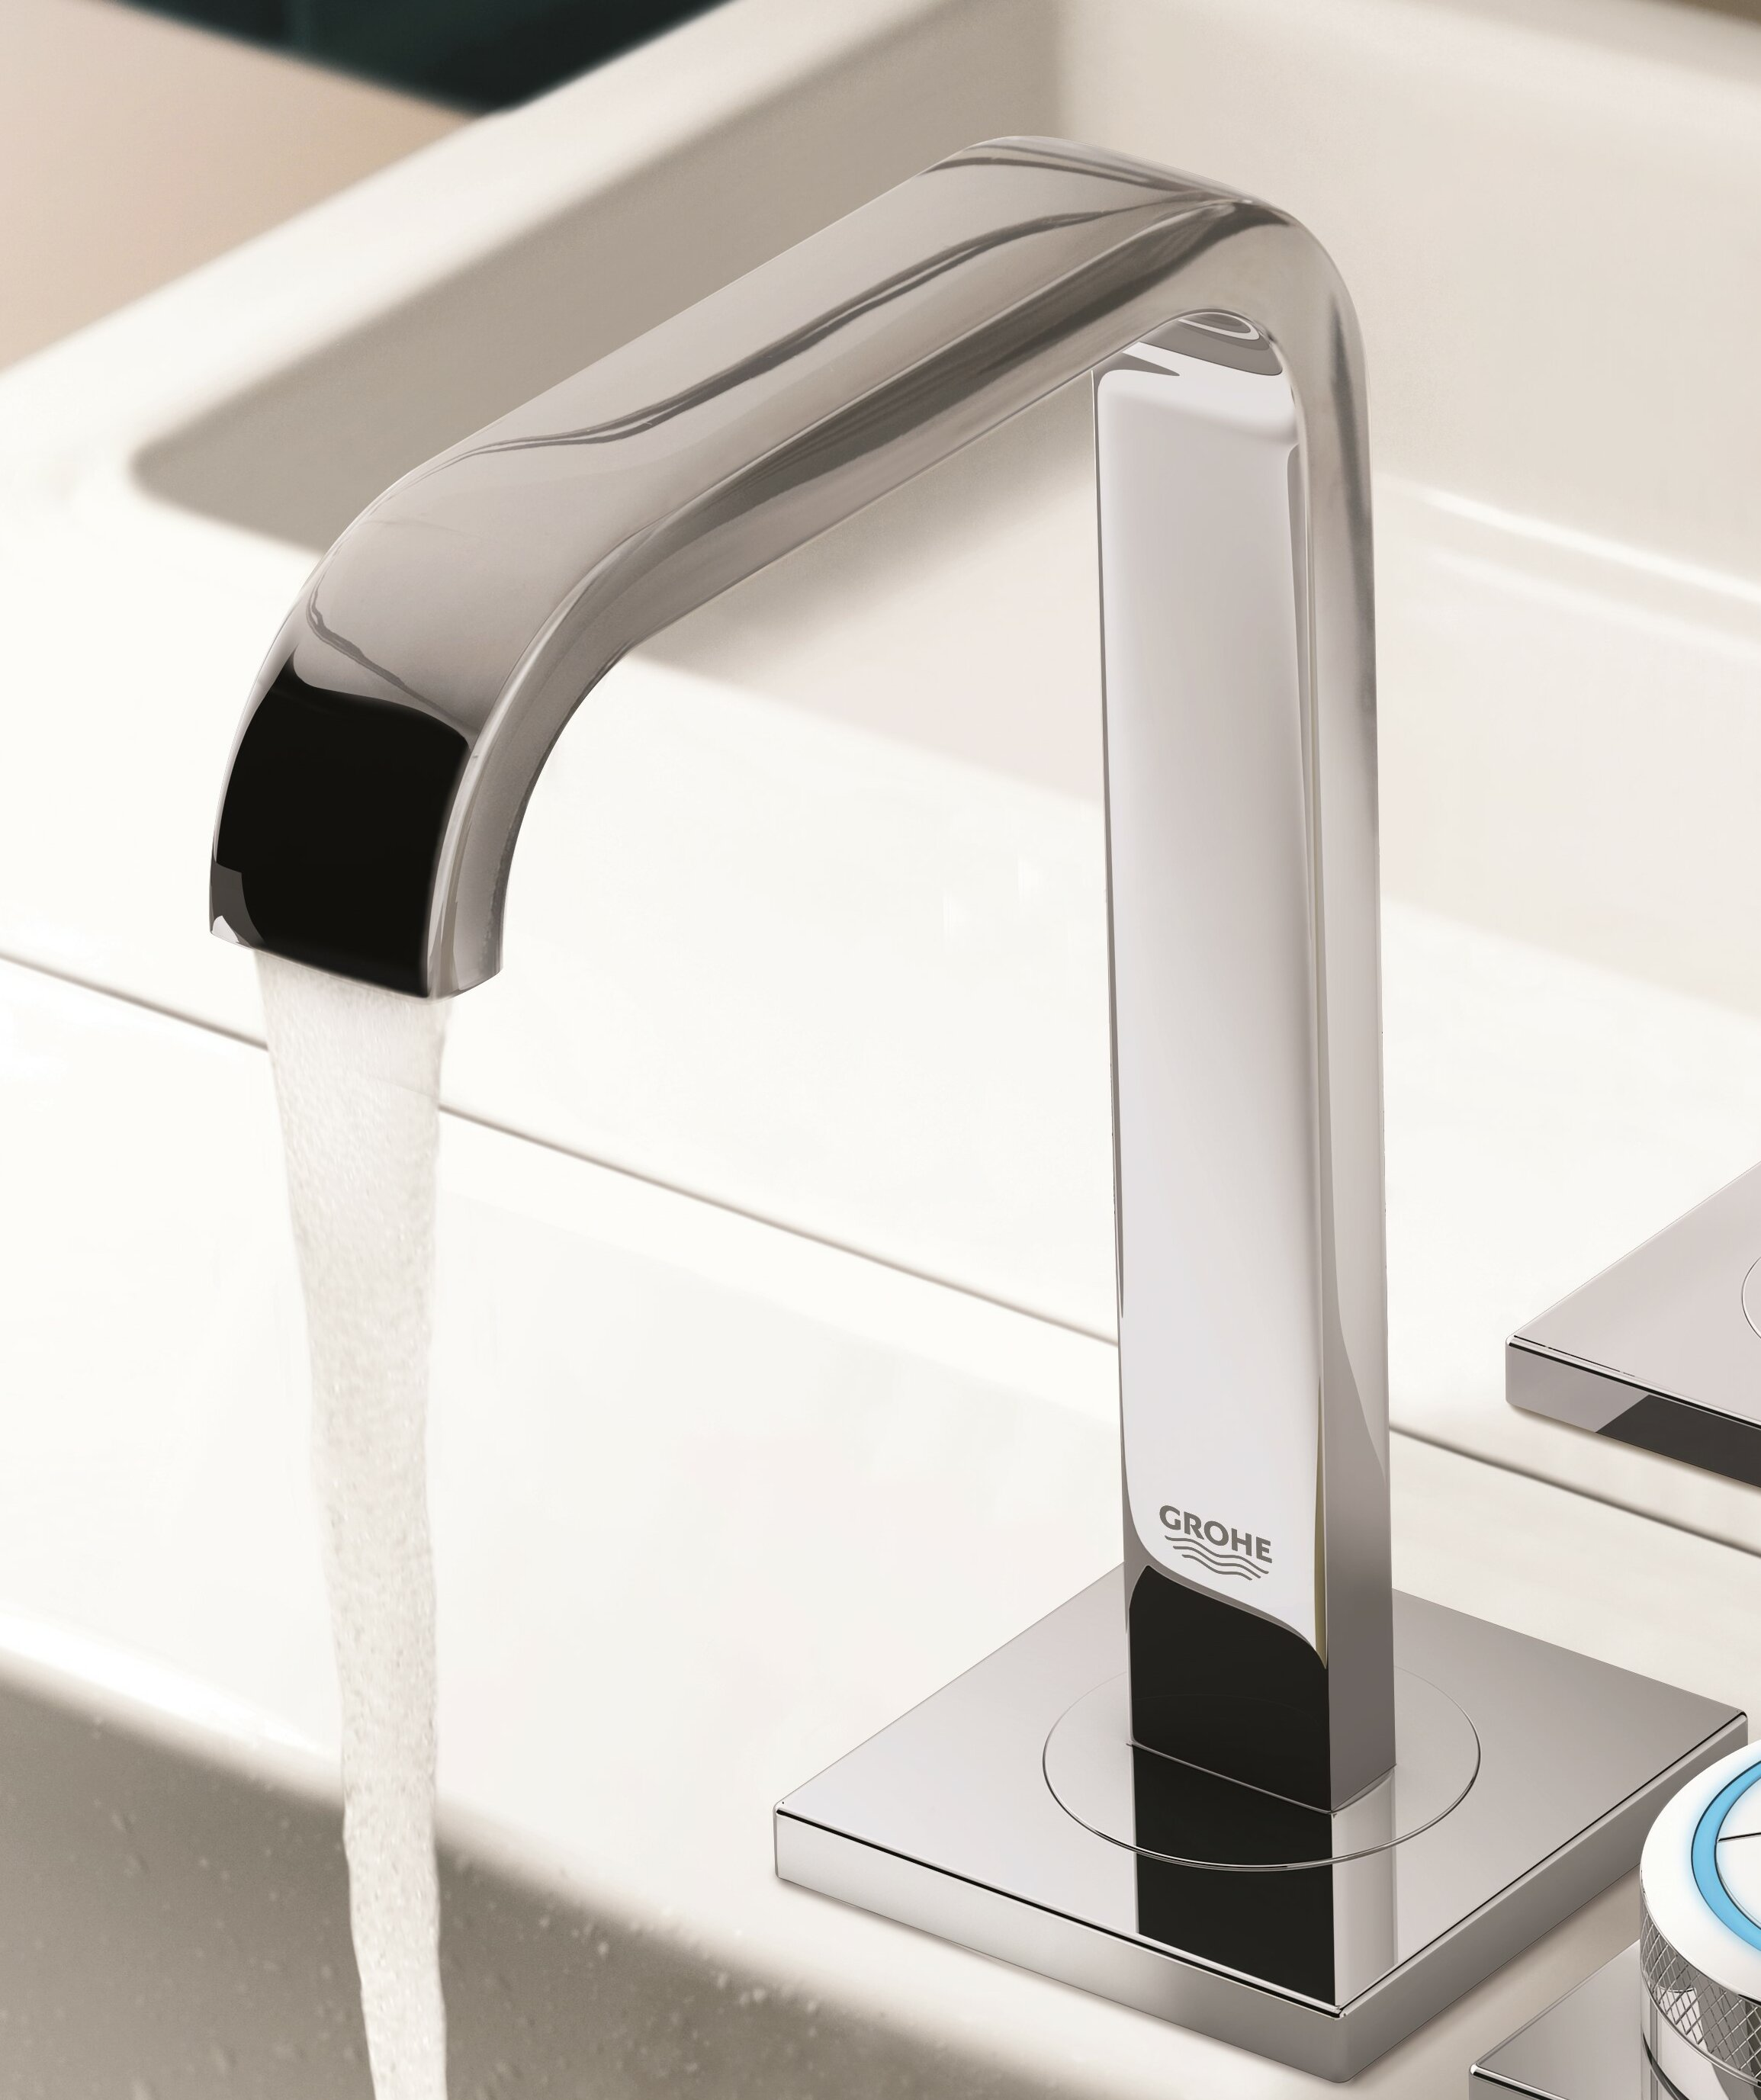 Grohe Allure Centerset Electronic Faucet with F-digital Sink Mixer ...